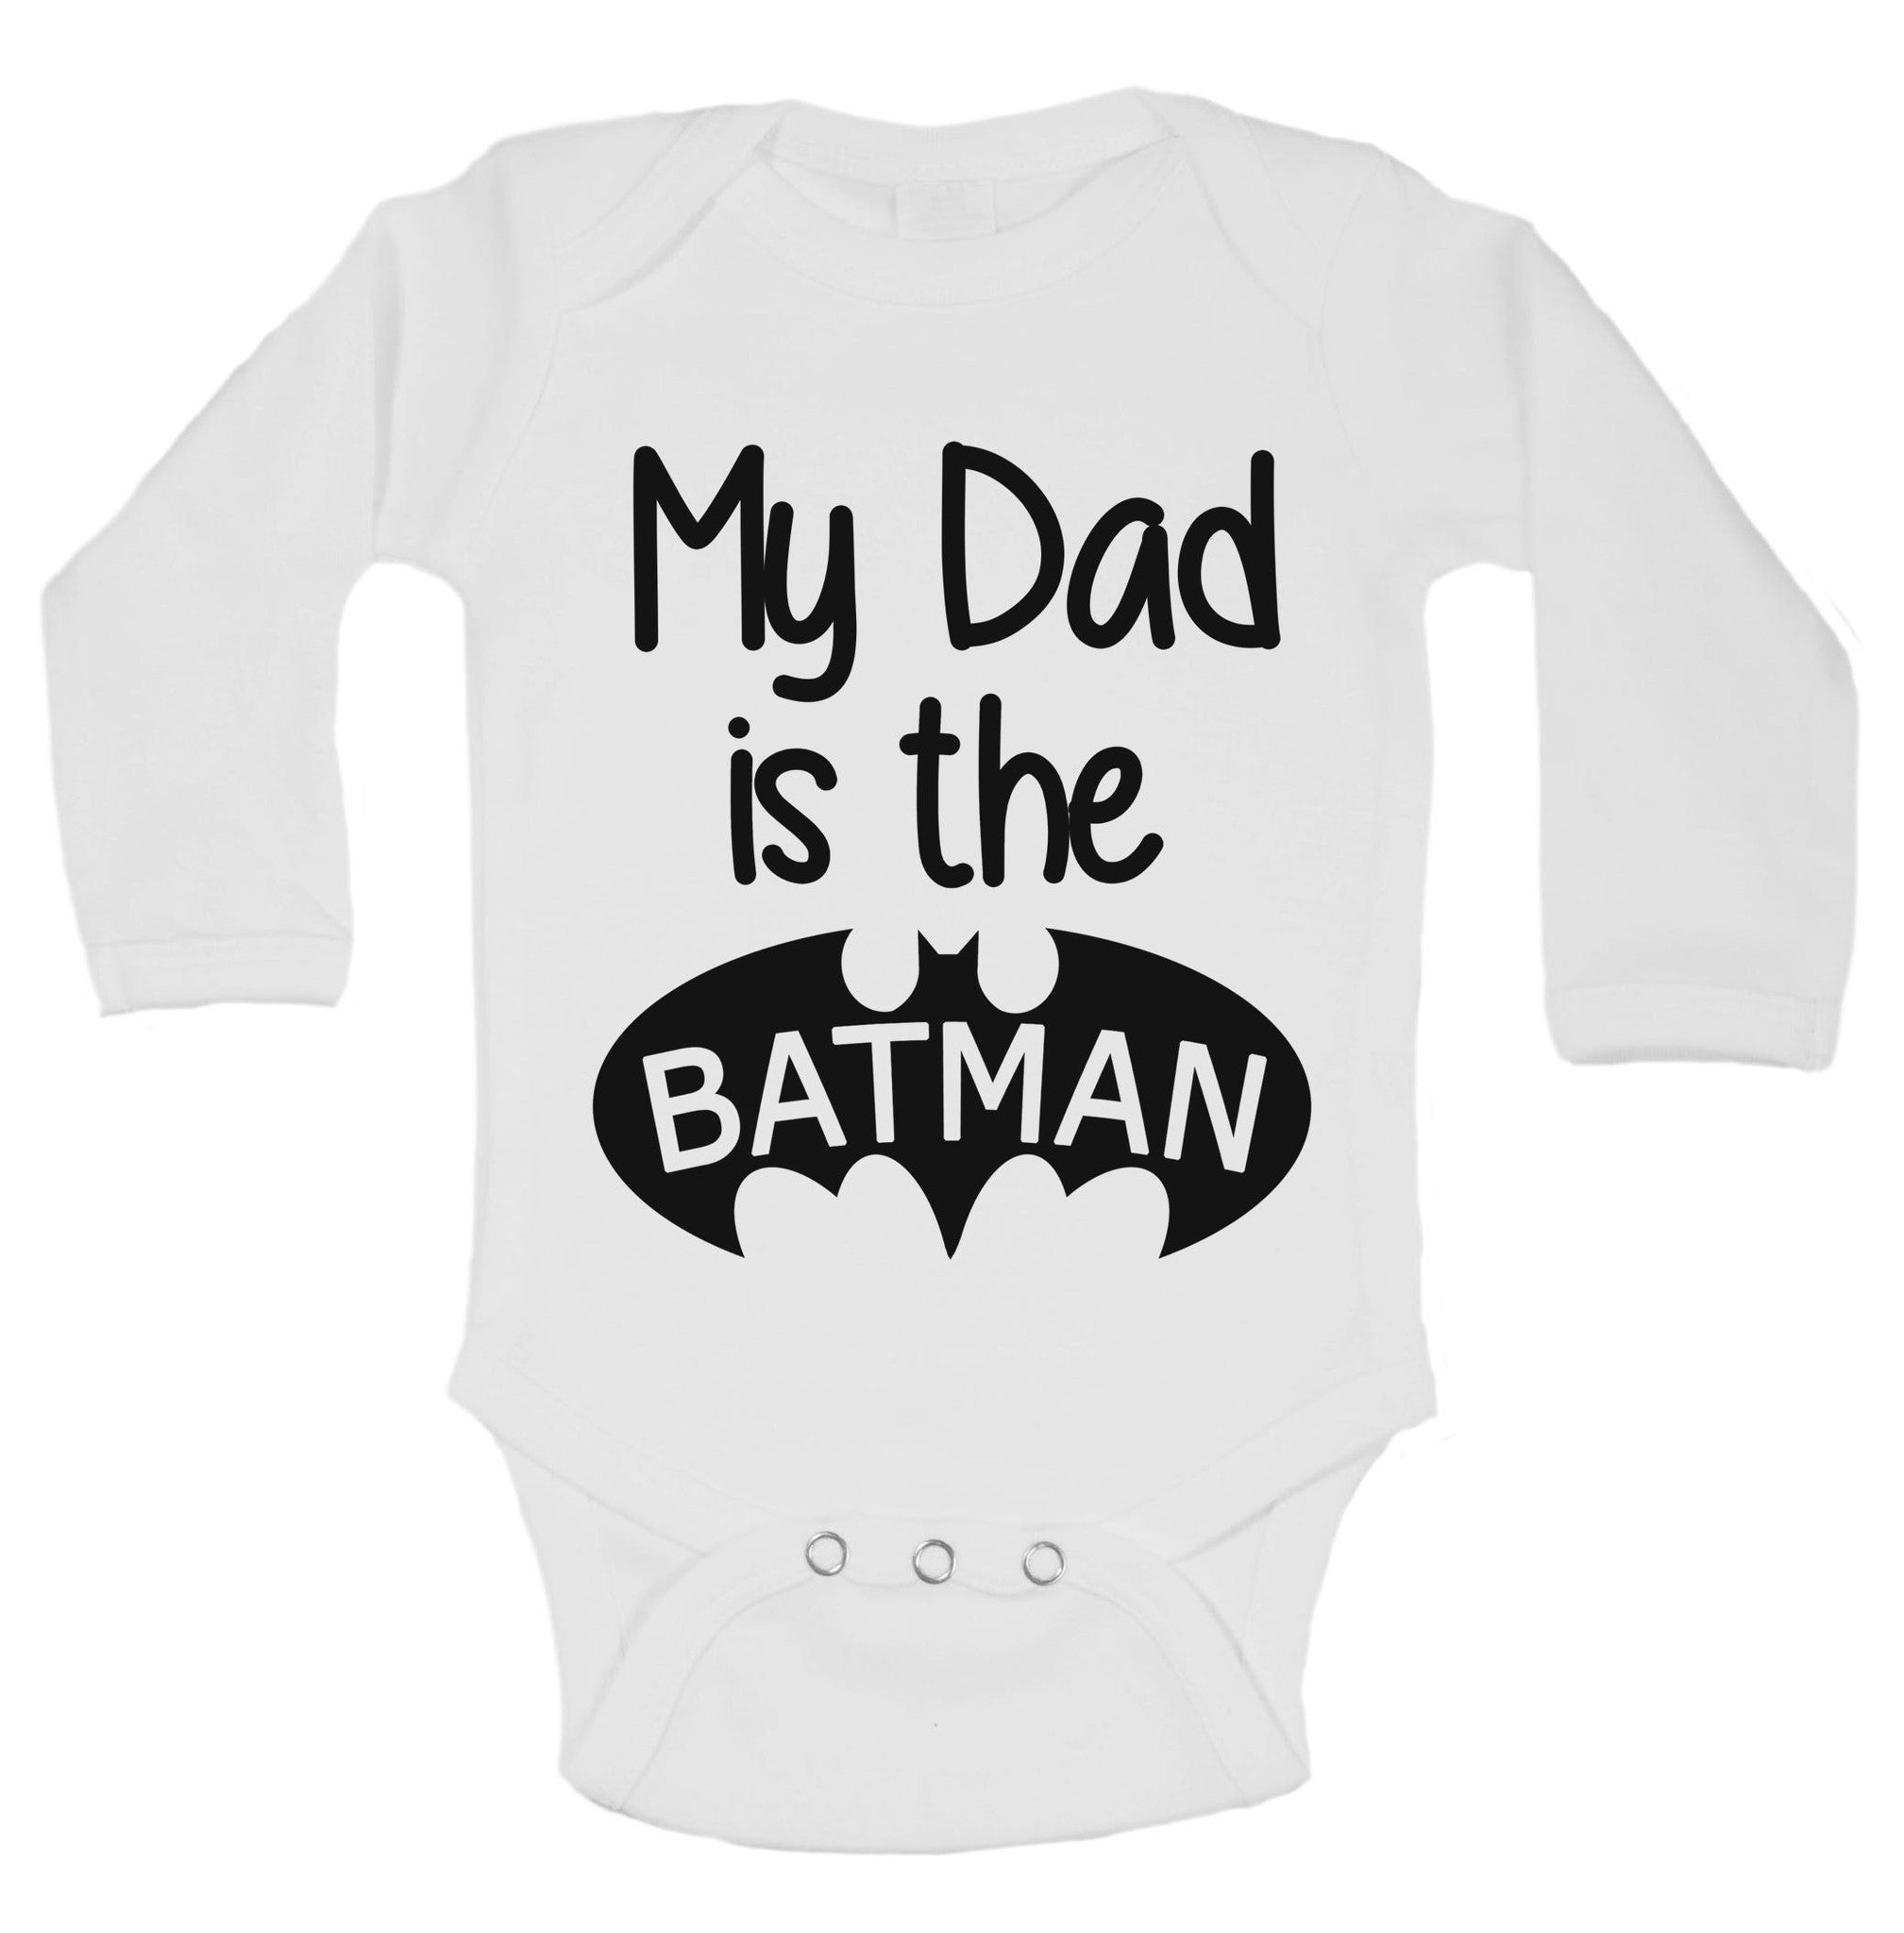 My Dad Is The Batman Funny Kids Onesie - B158 - Funny Shirts Tank Tops Burnouts and Triblends  - 1